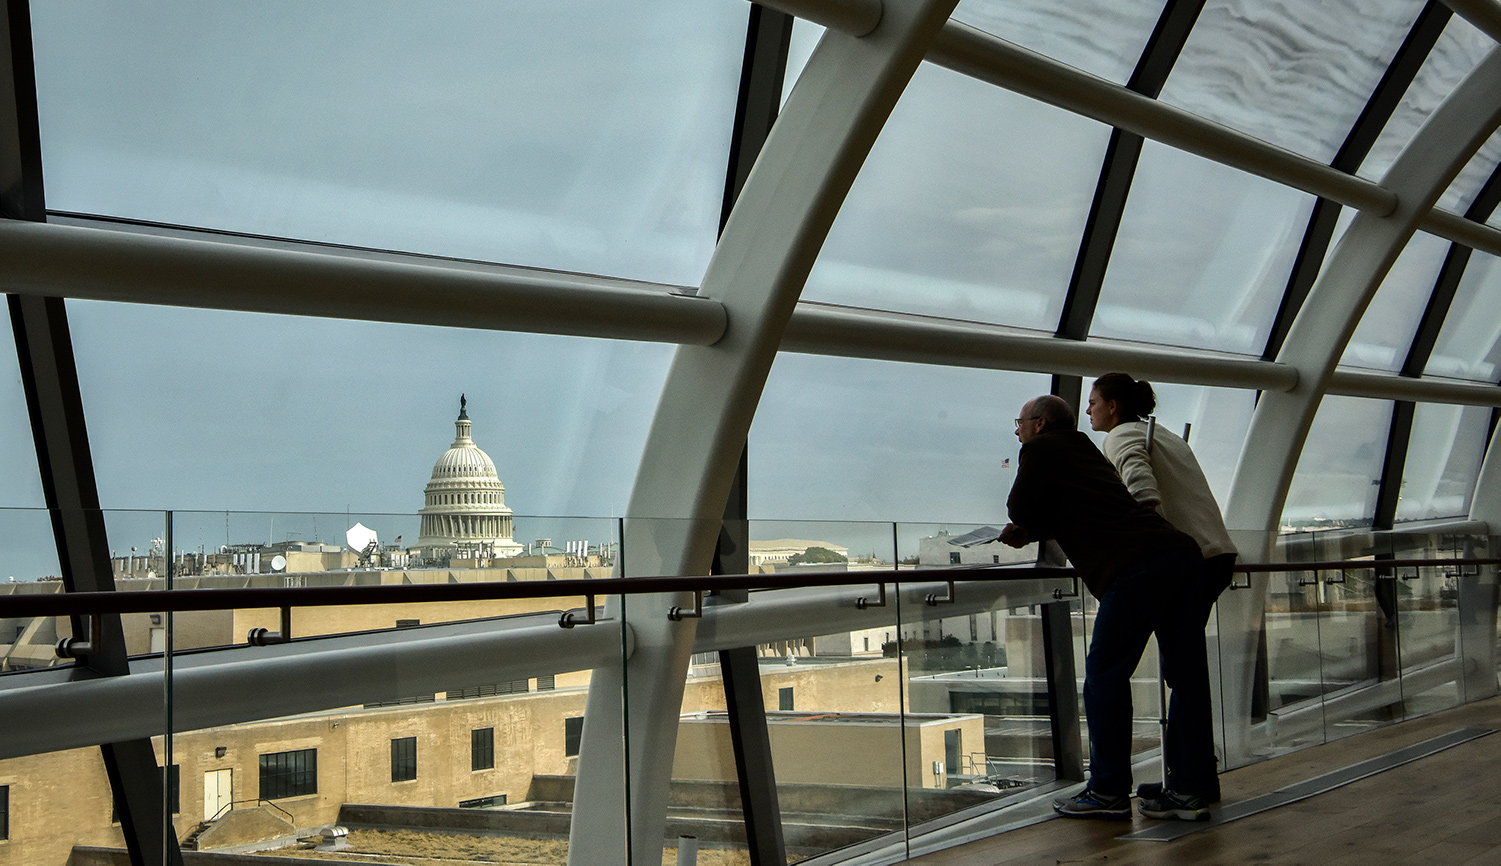 A pair of visitors takes in the view from an atrium at the Museum of the Bible in Washington, D.C. Bill O'Leary/The Washington Post via Getty Images.